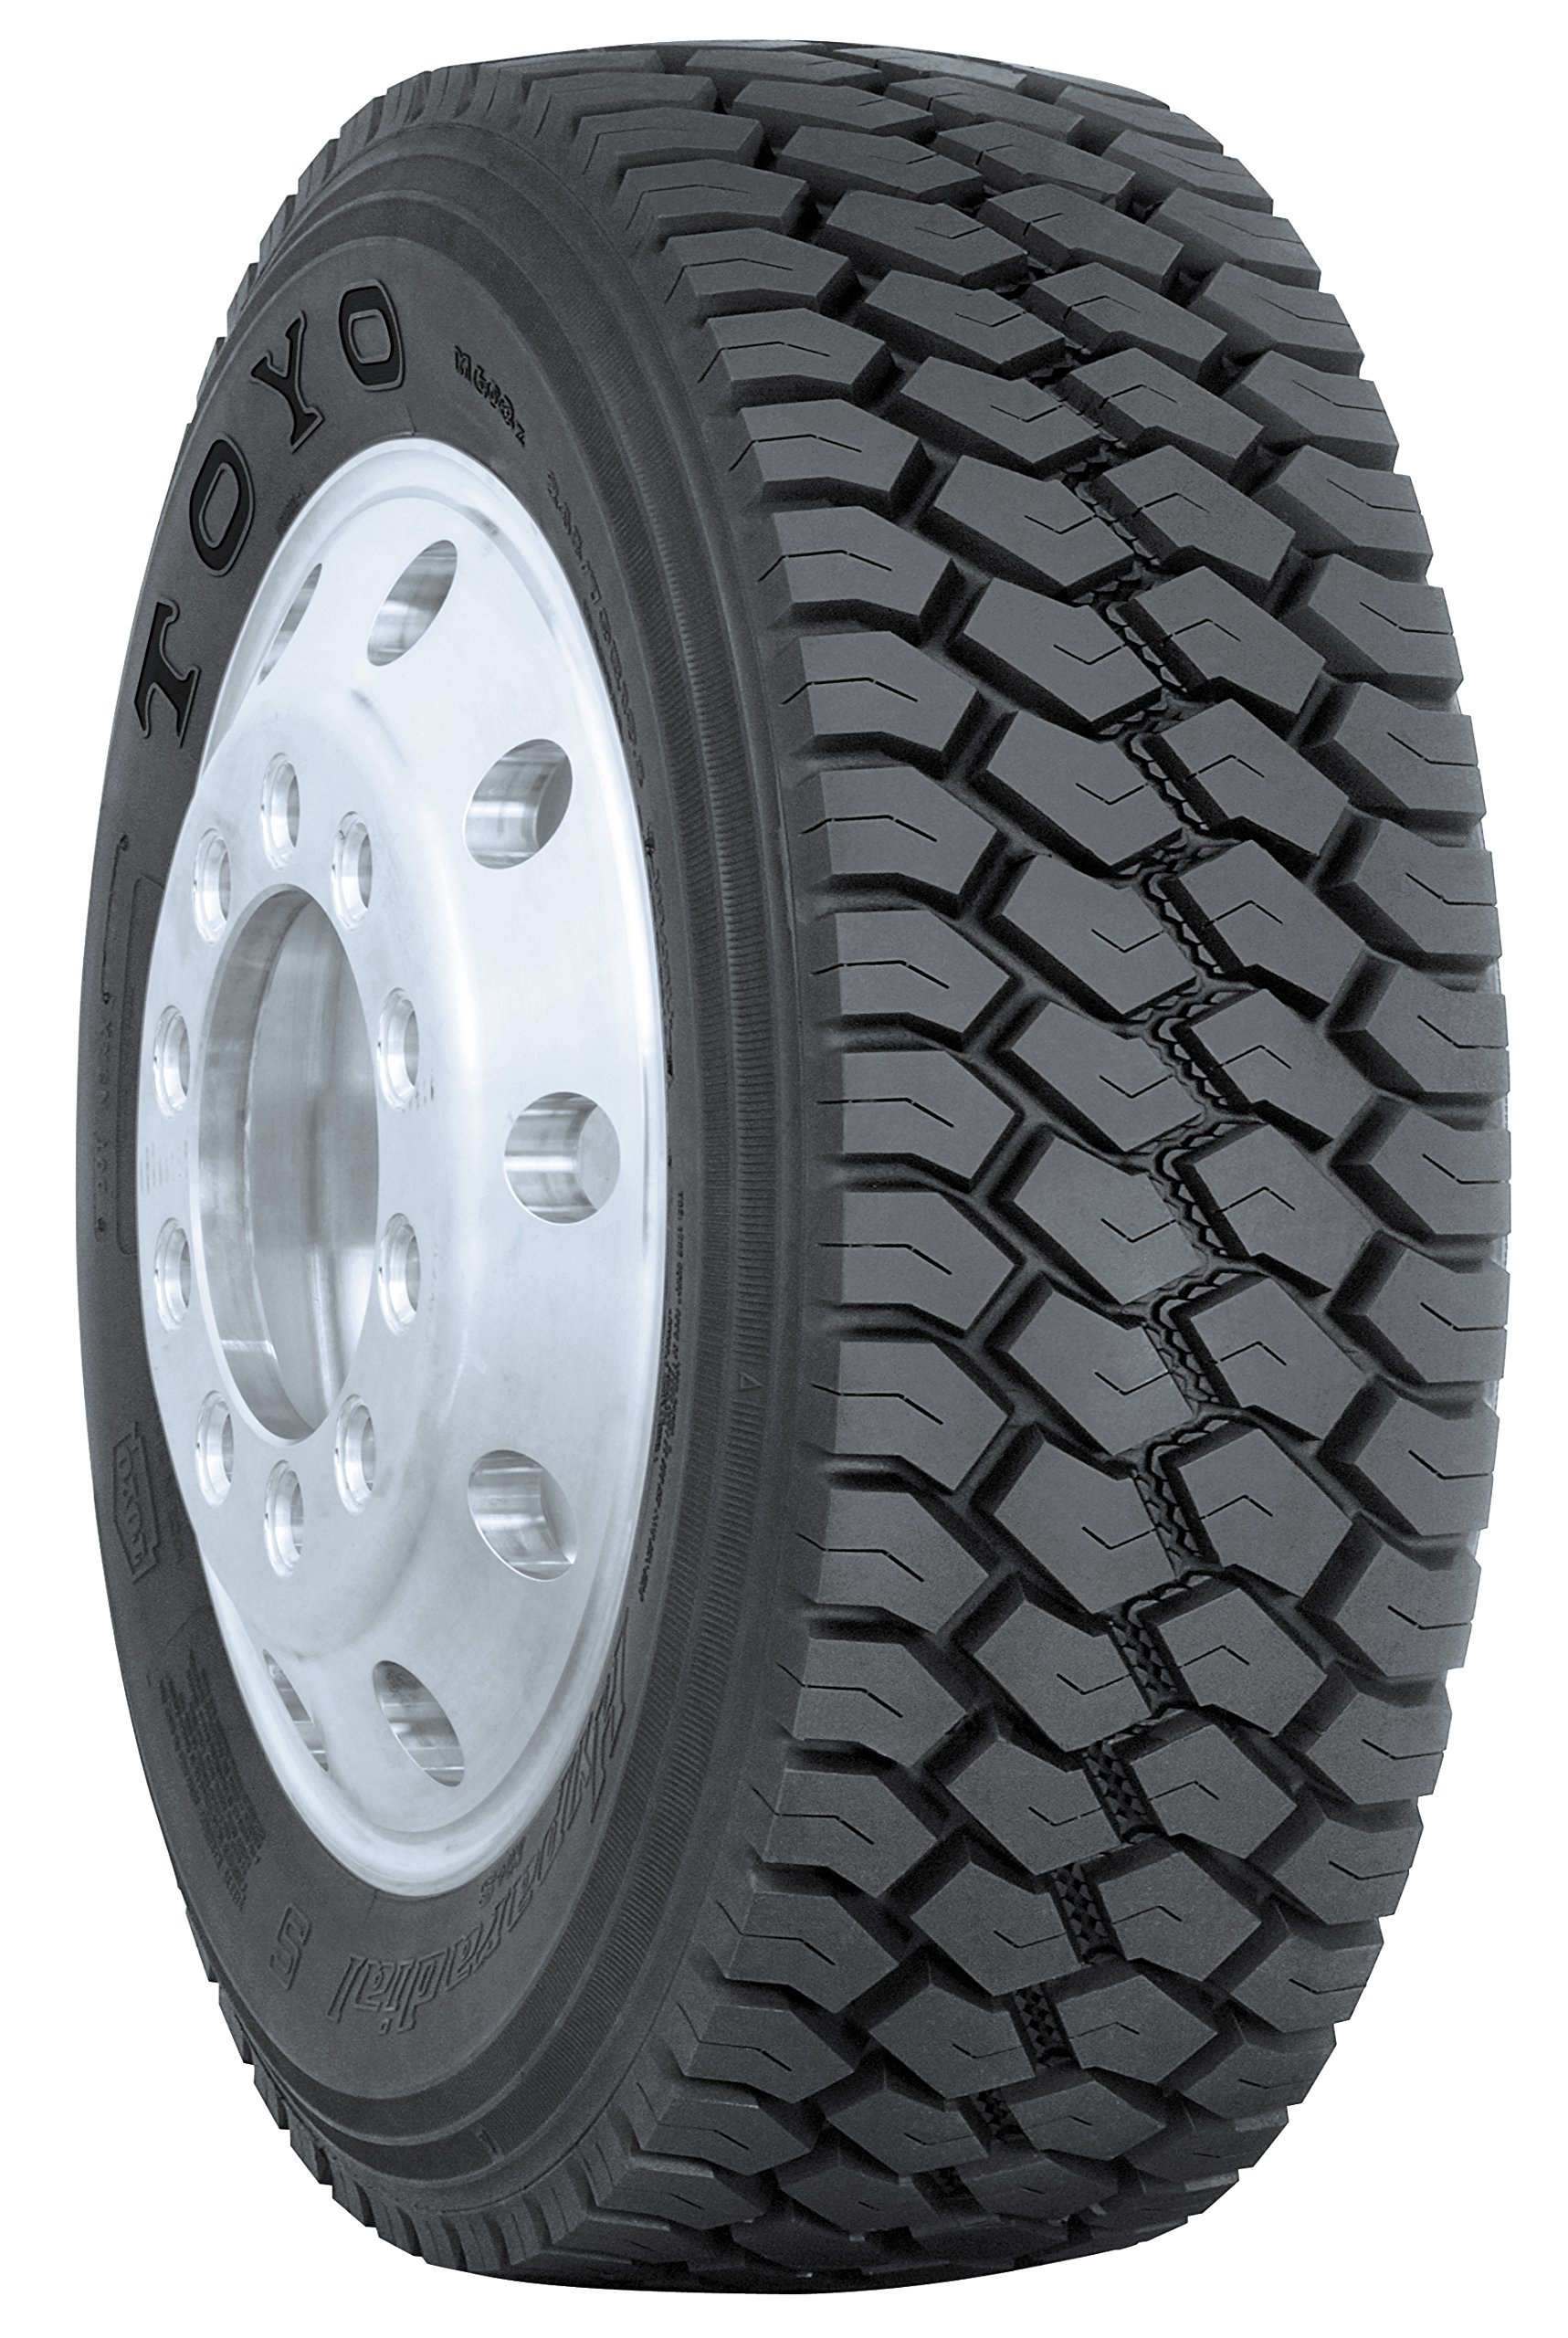 Toyo M-608 Commercial Truck Radial Tire - 265/70R19.5 140L